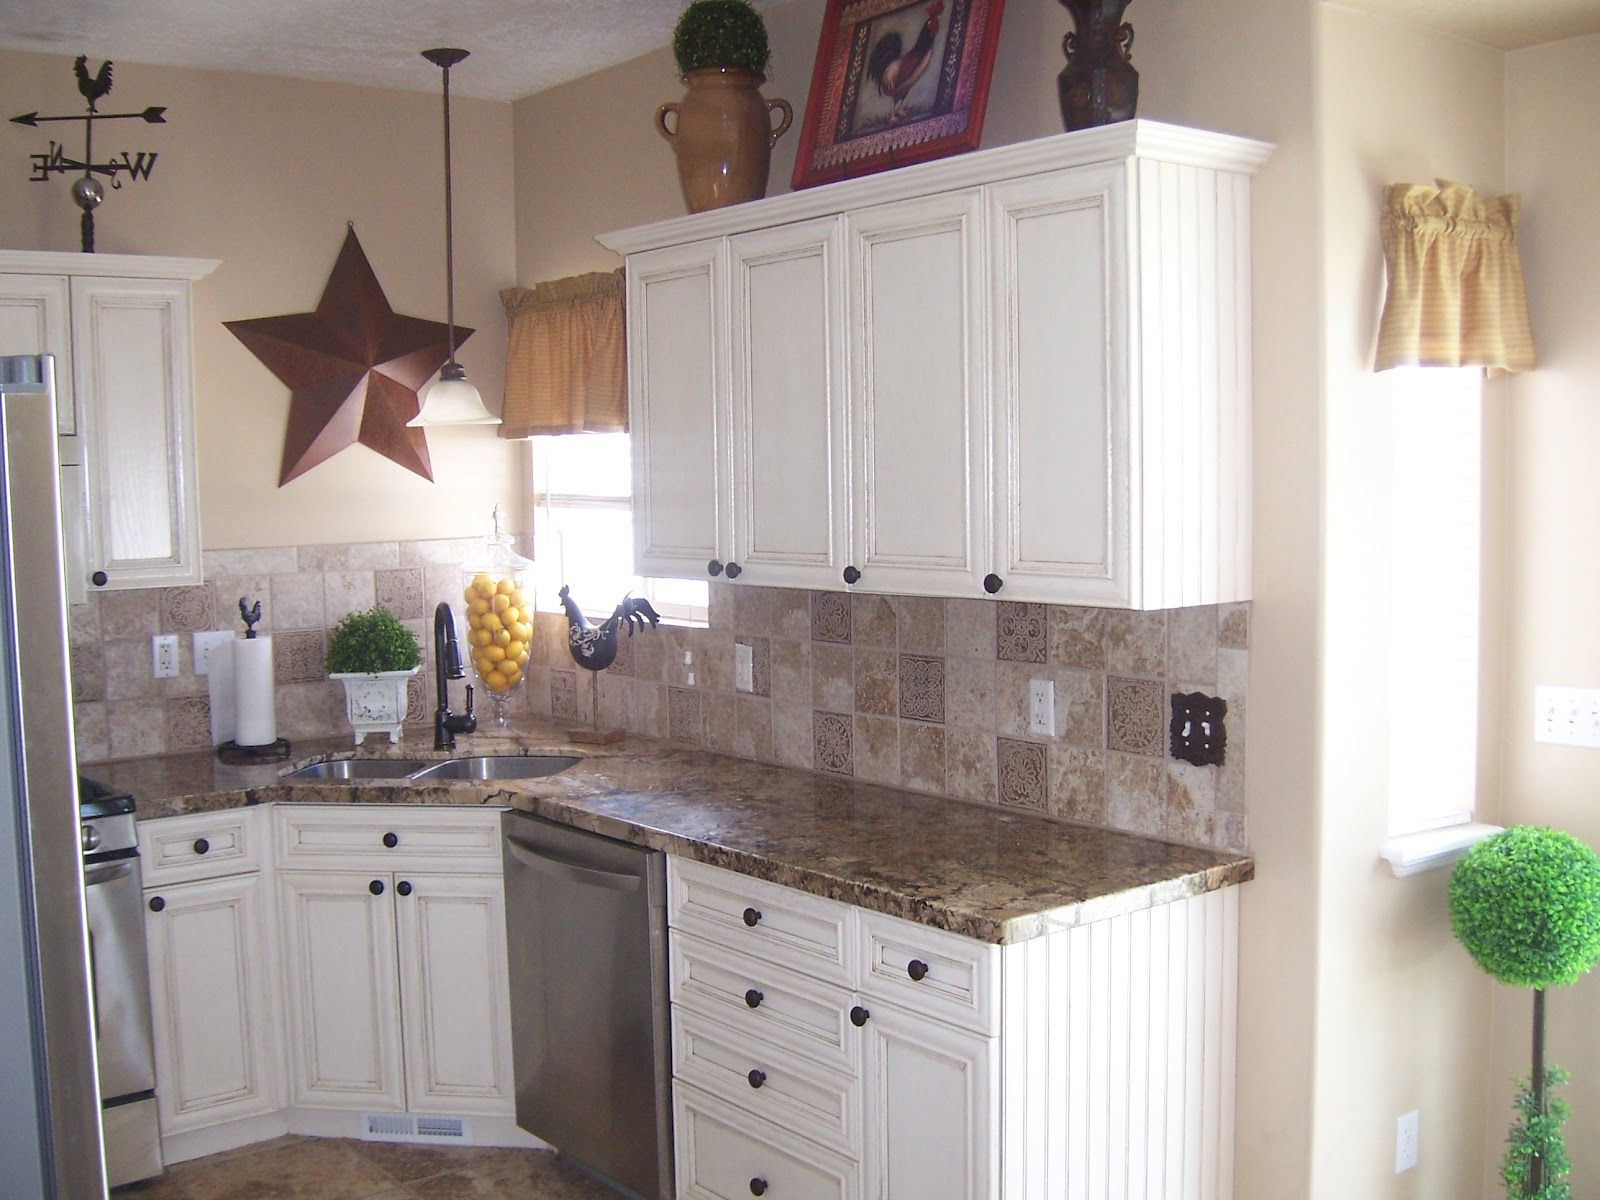 kitchen remodeling montgomery al white cabinets with laminate countertops Laminate counter tops were replaced with a beautiful granite